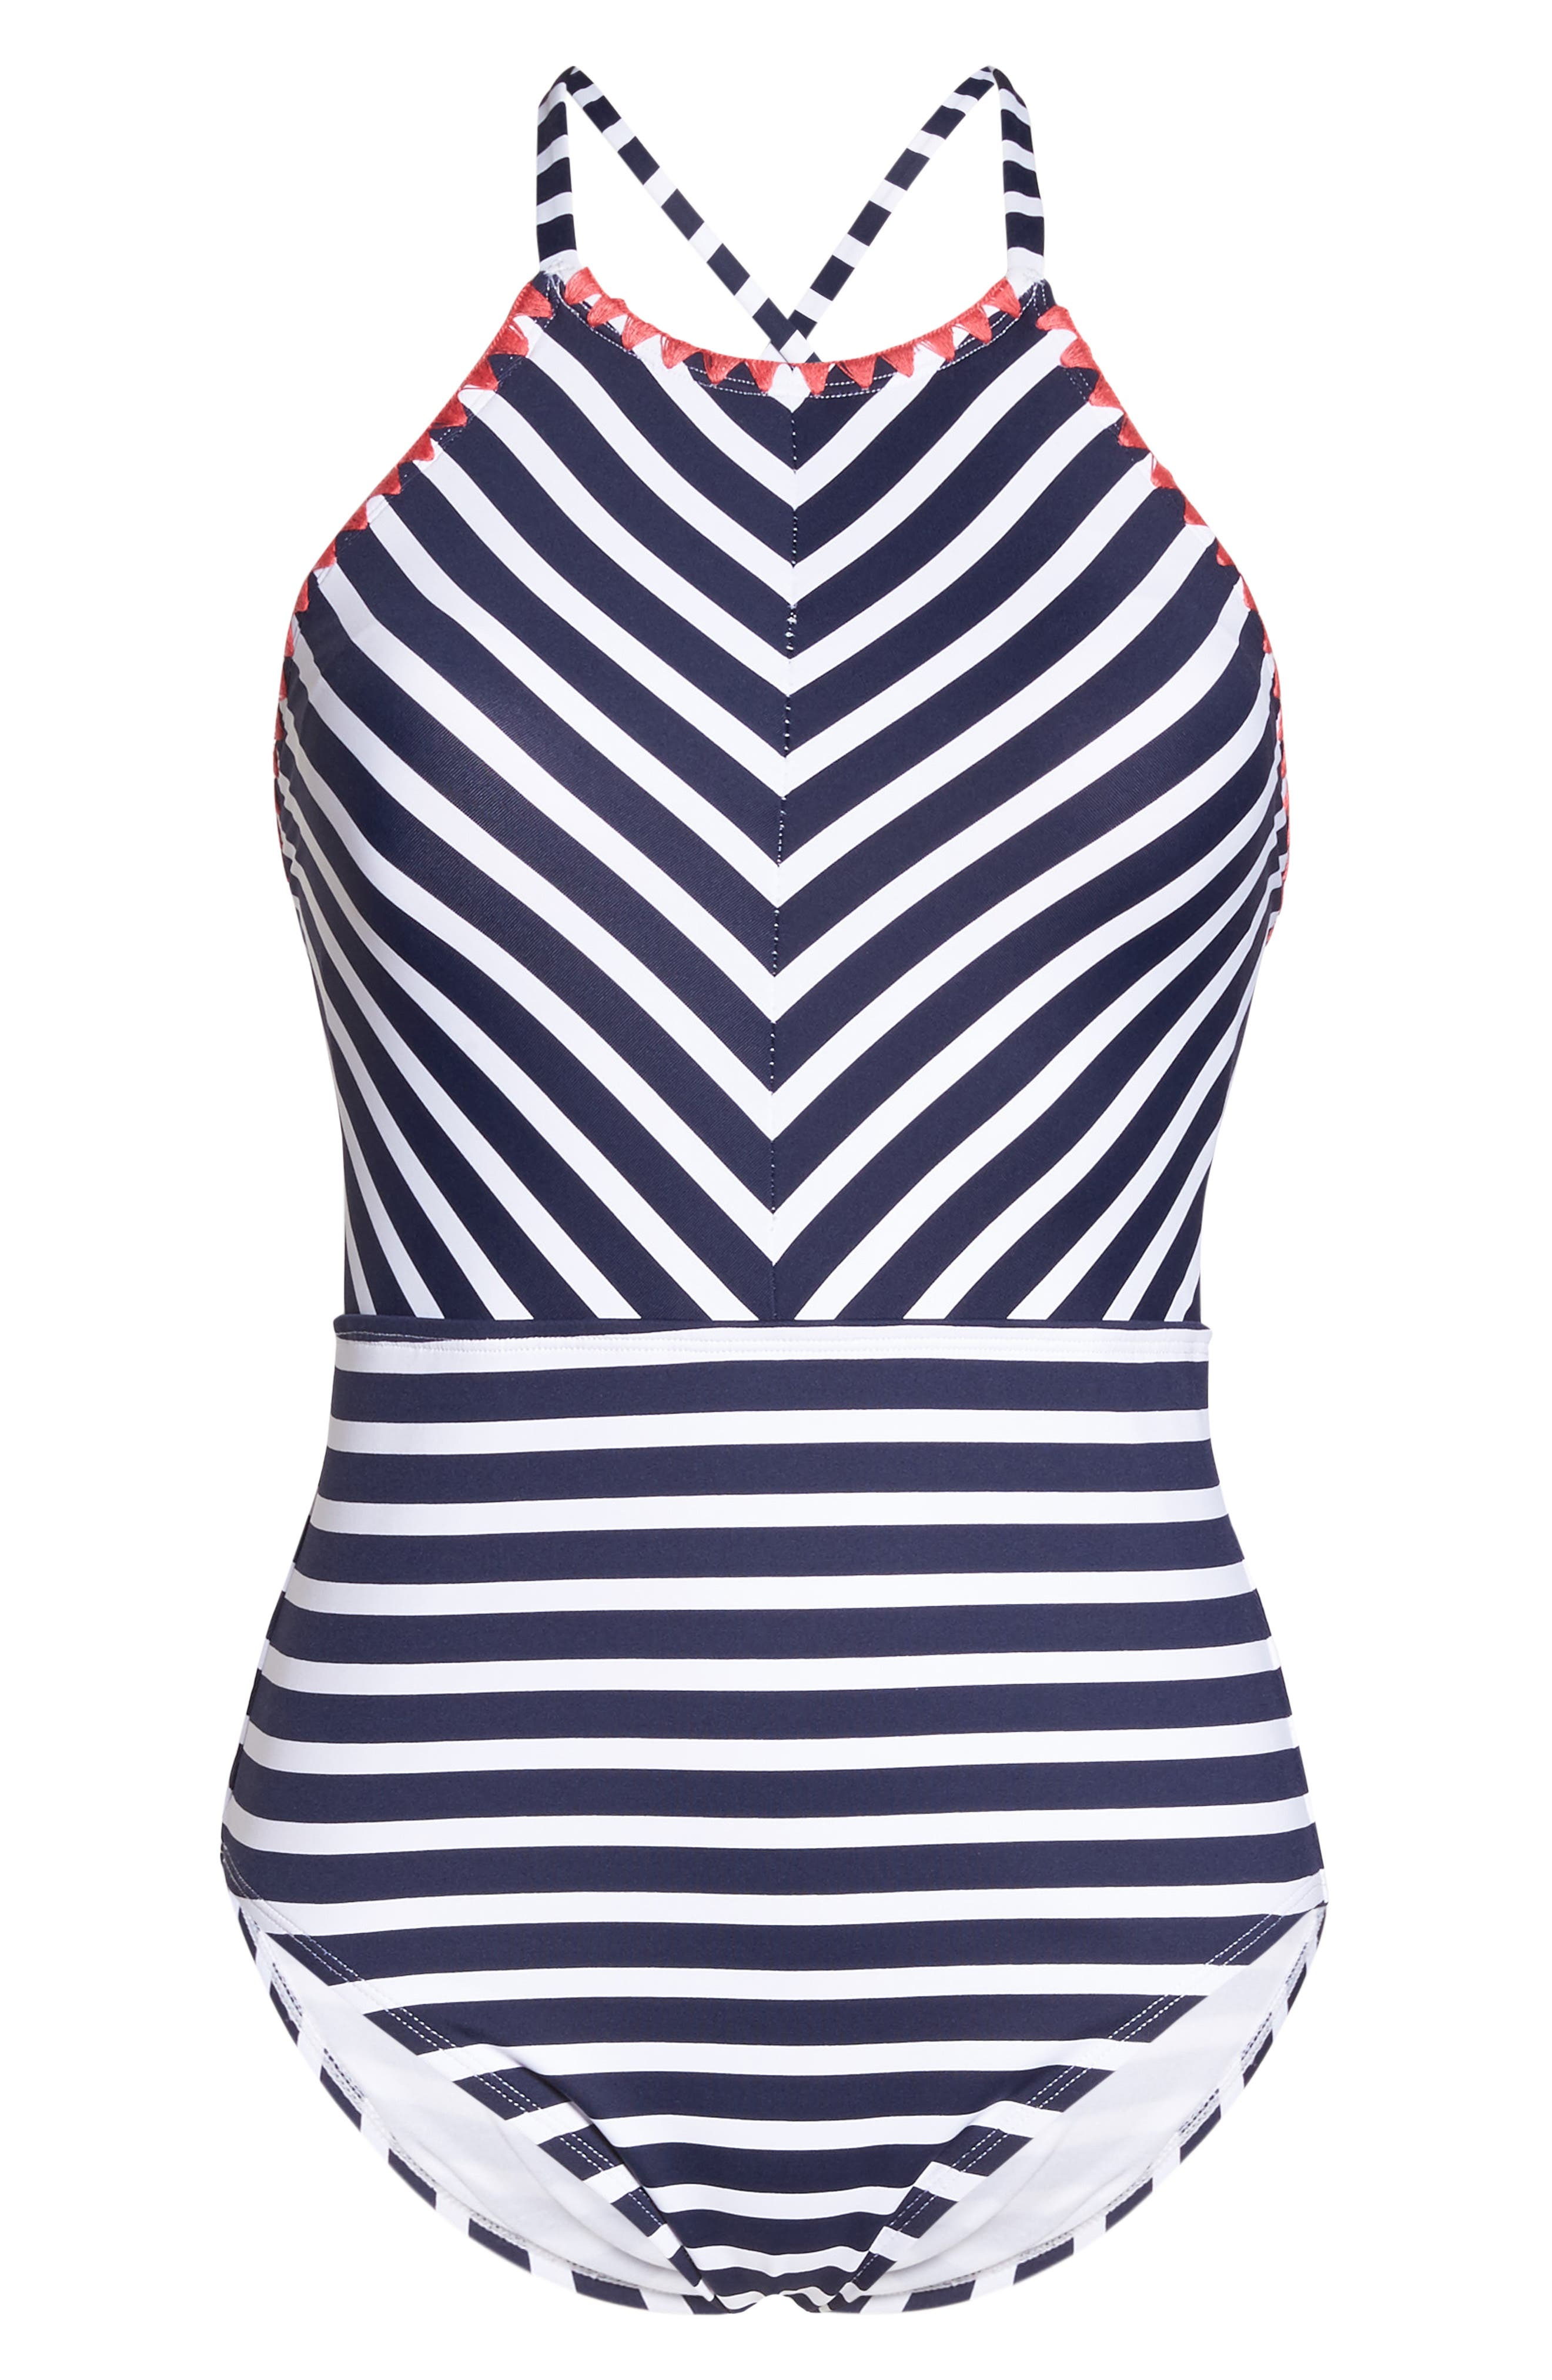 Breton Stripe One-Piece Swimsuit,                             Alternate thumbnail 6, color,                             Mare Navy/ White